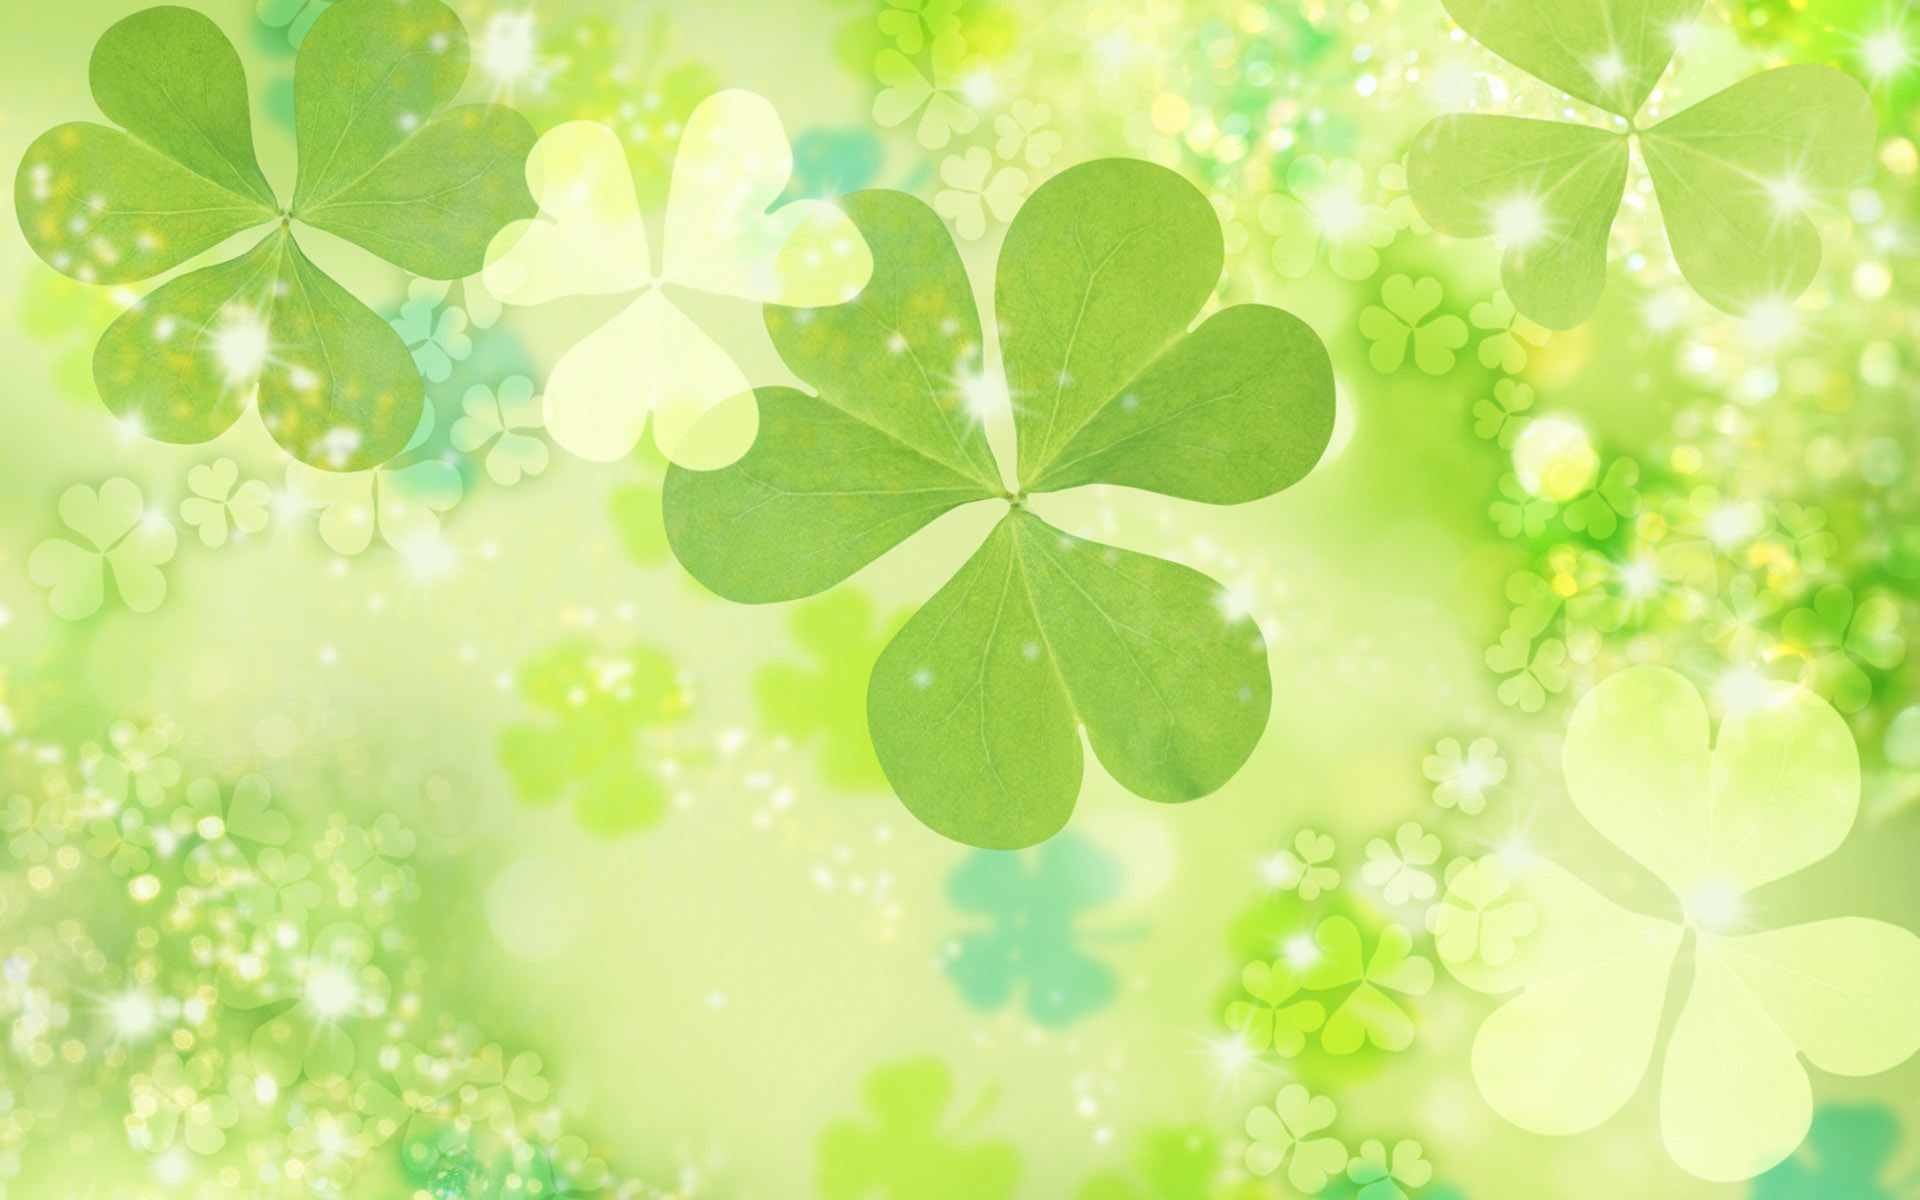 1920x1200 St. Patrick's Day Computer Wallpapers, Desktop Backgrounds .